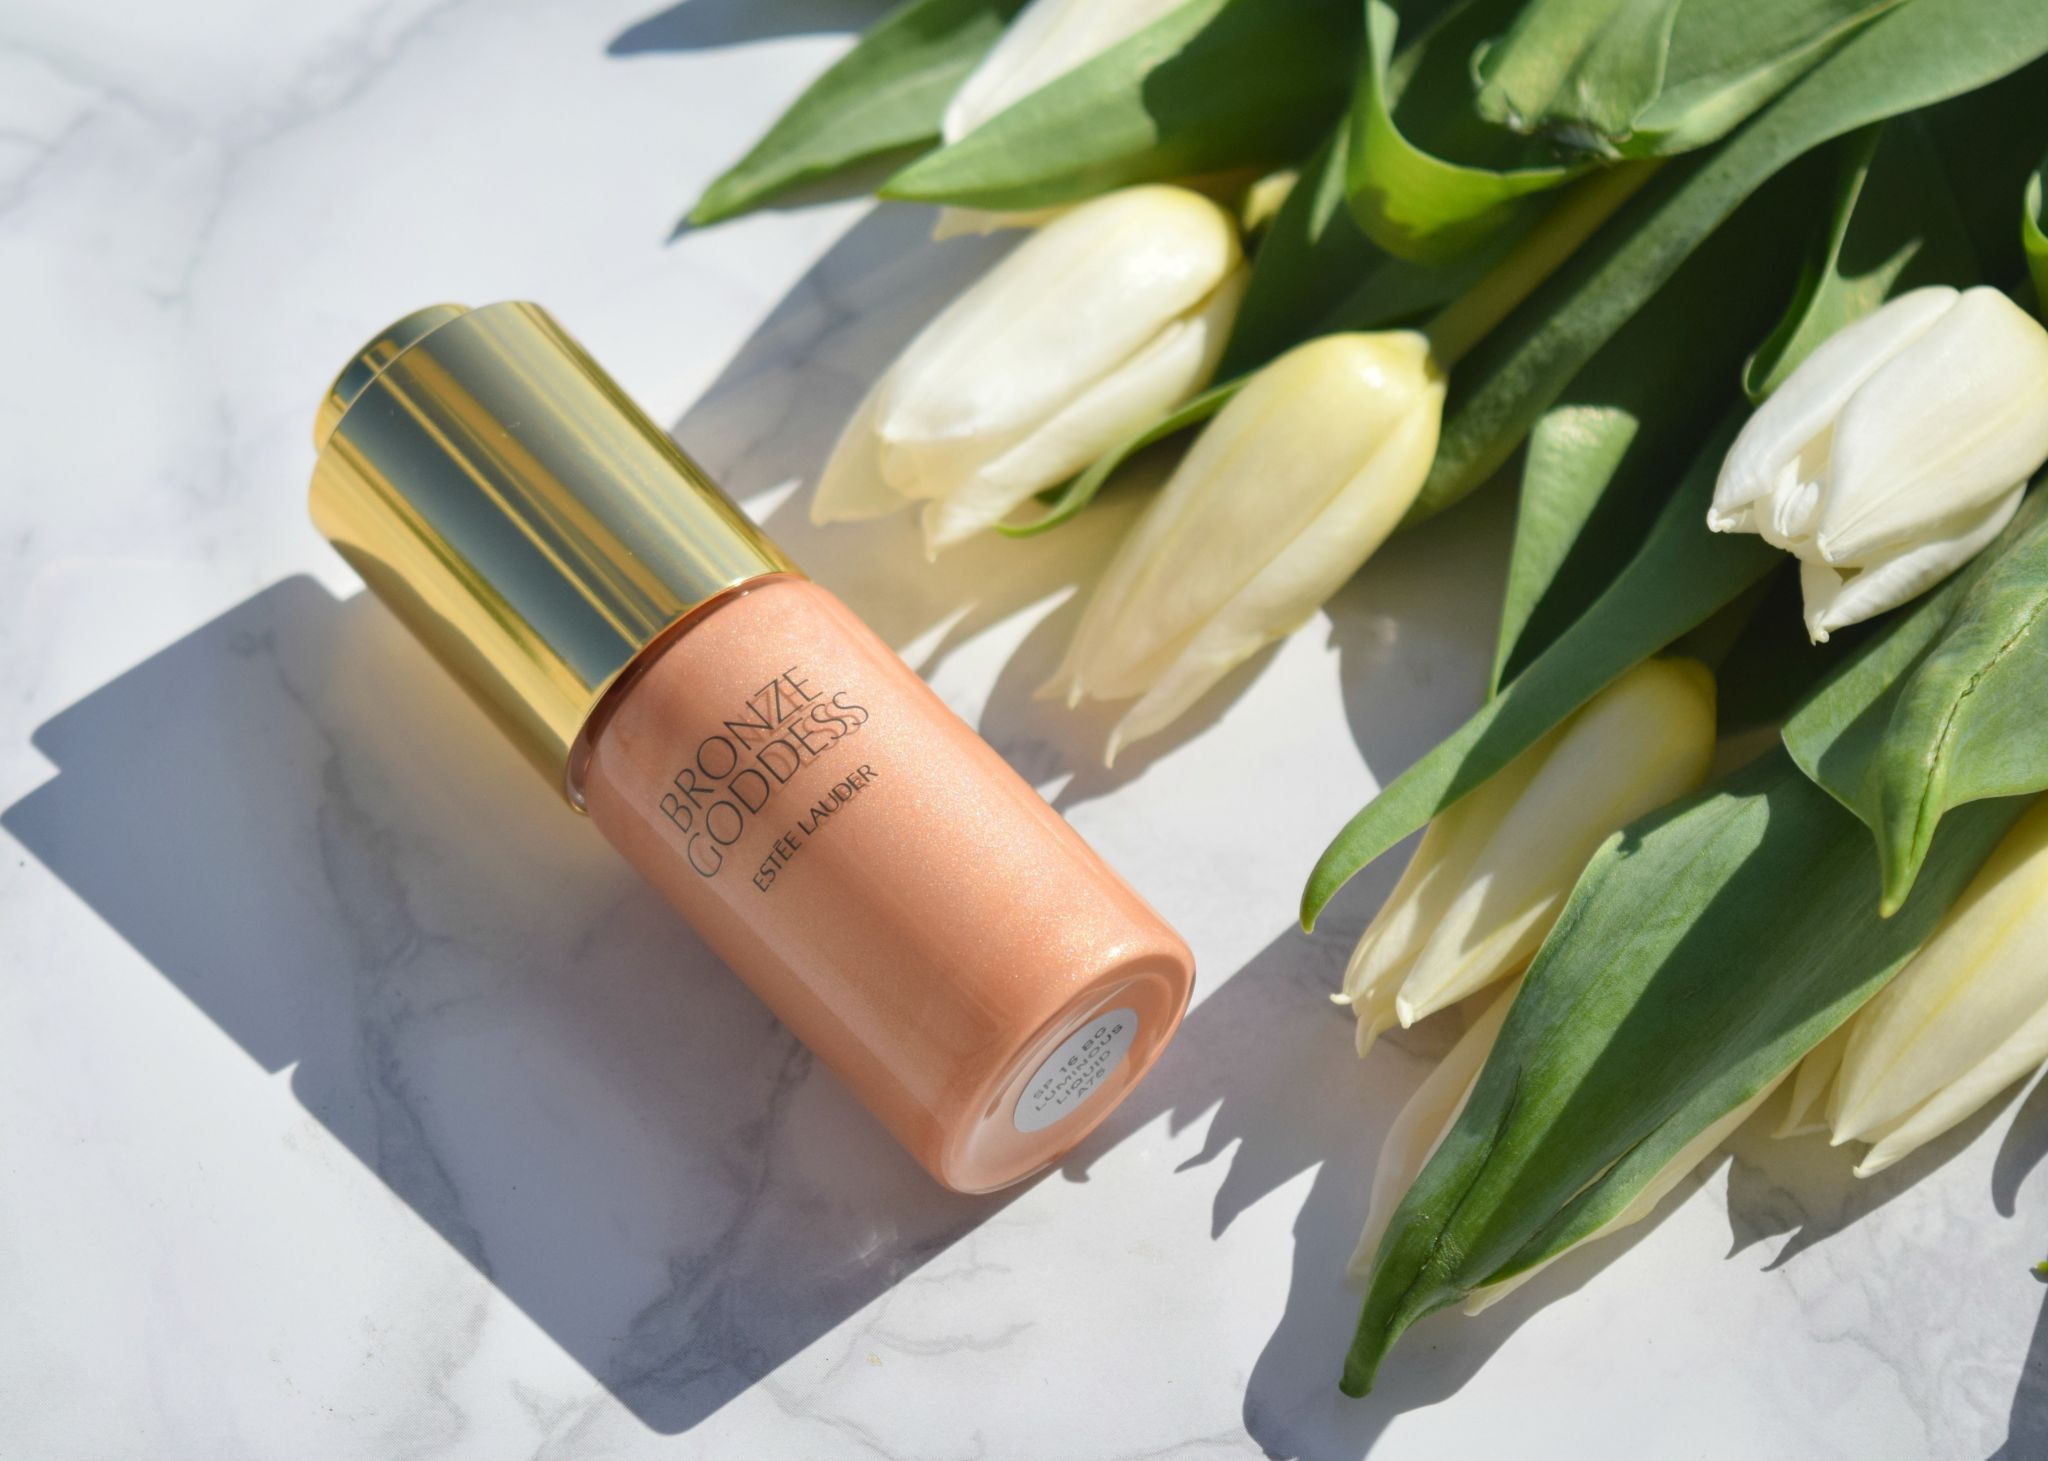 Estee Lauder Bronze Goddess Illuminating Drops